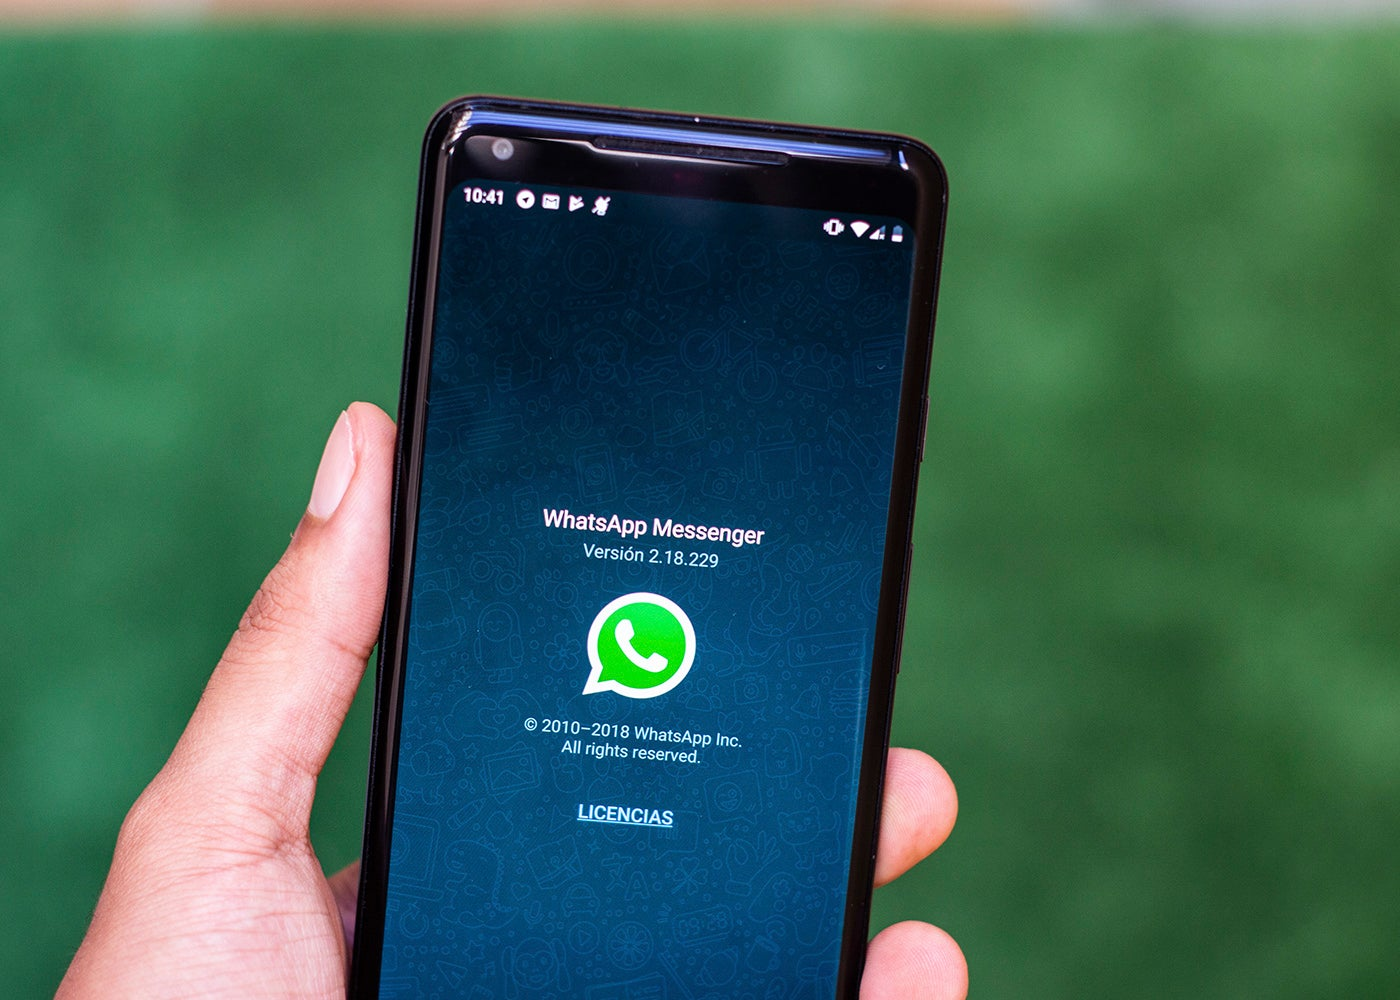 These are the most common misuses of WhatsApp